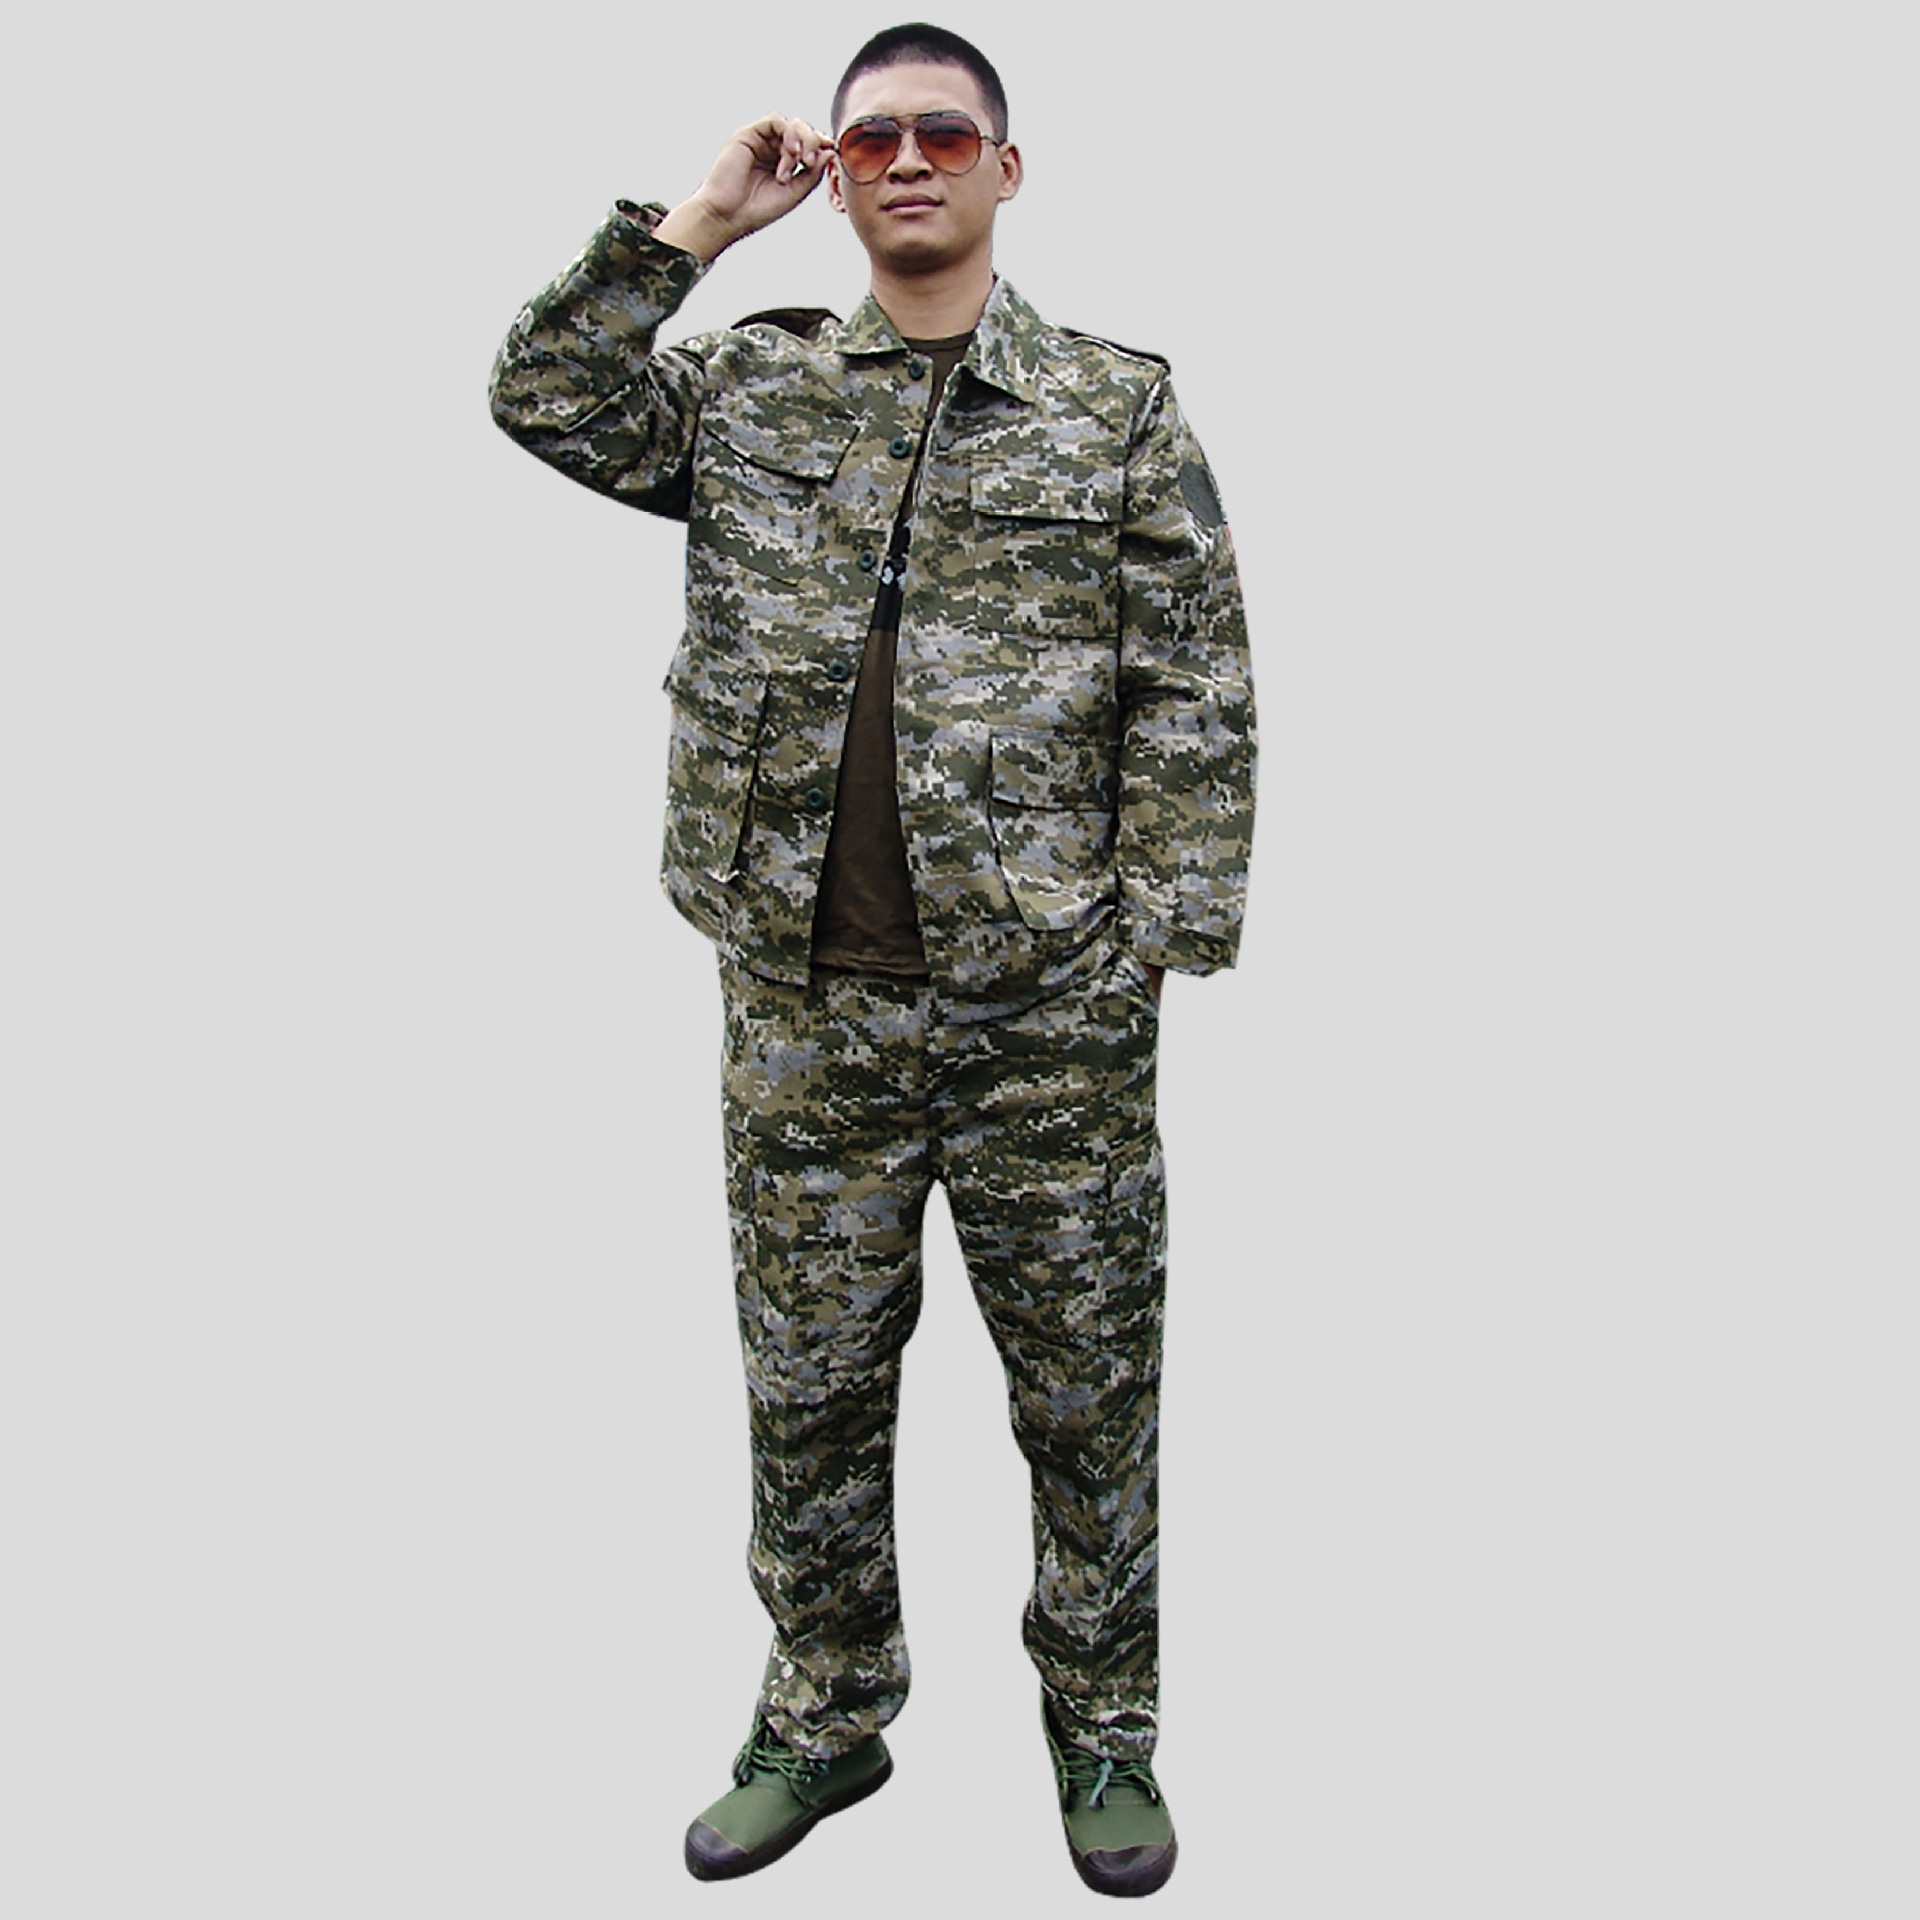 Export | Middle East Army Field Jacket Iraq Camouflage Military Training Suit Camouflage Set